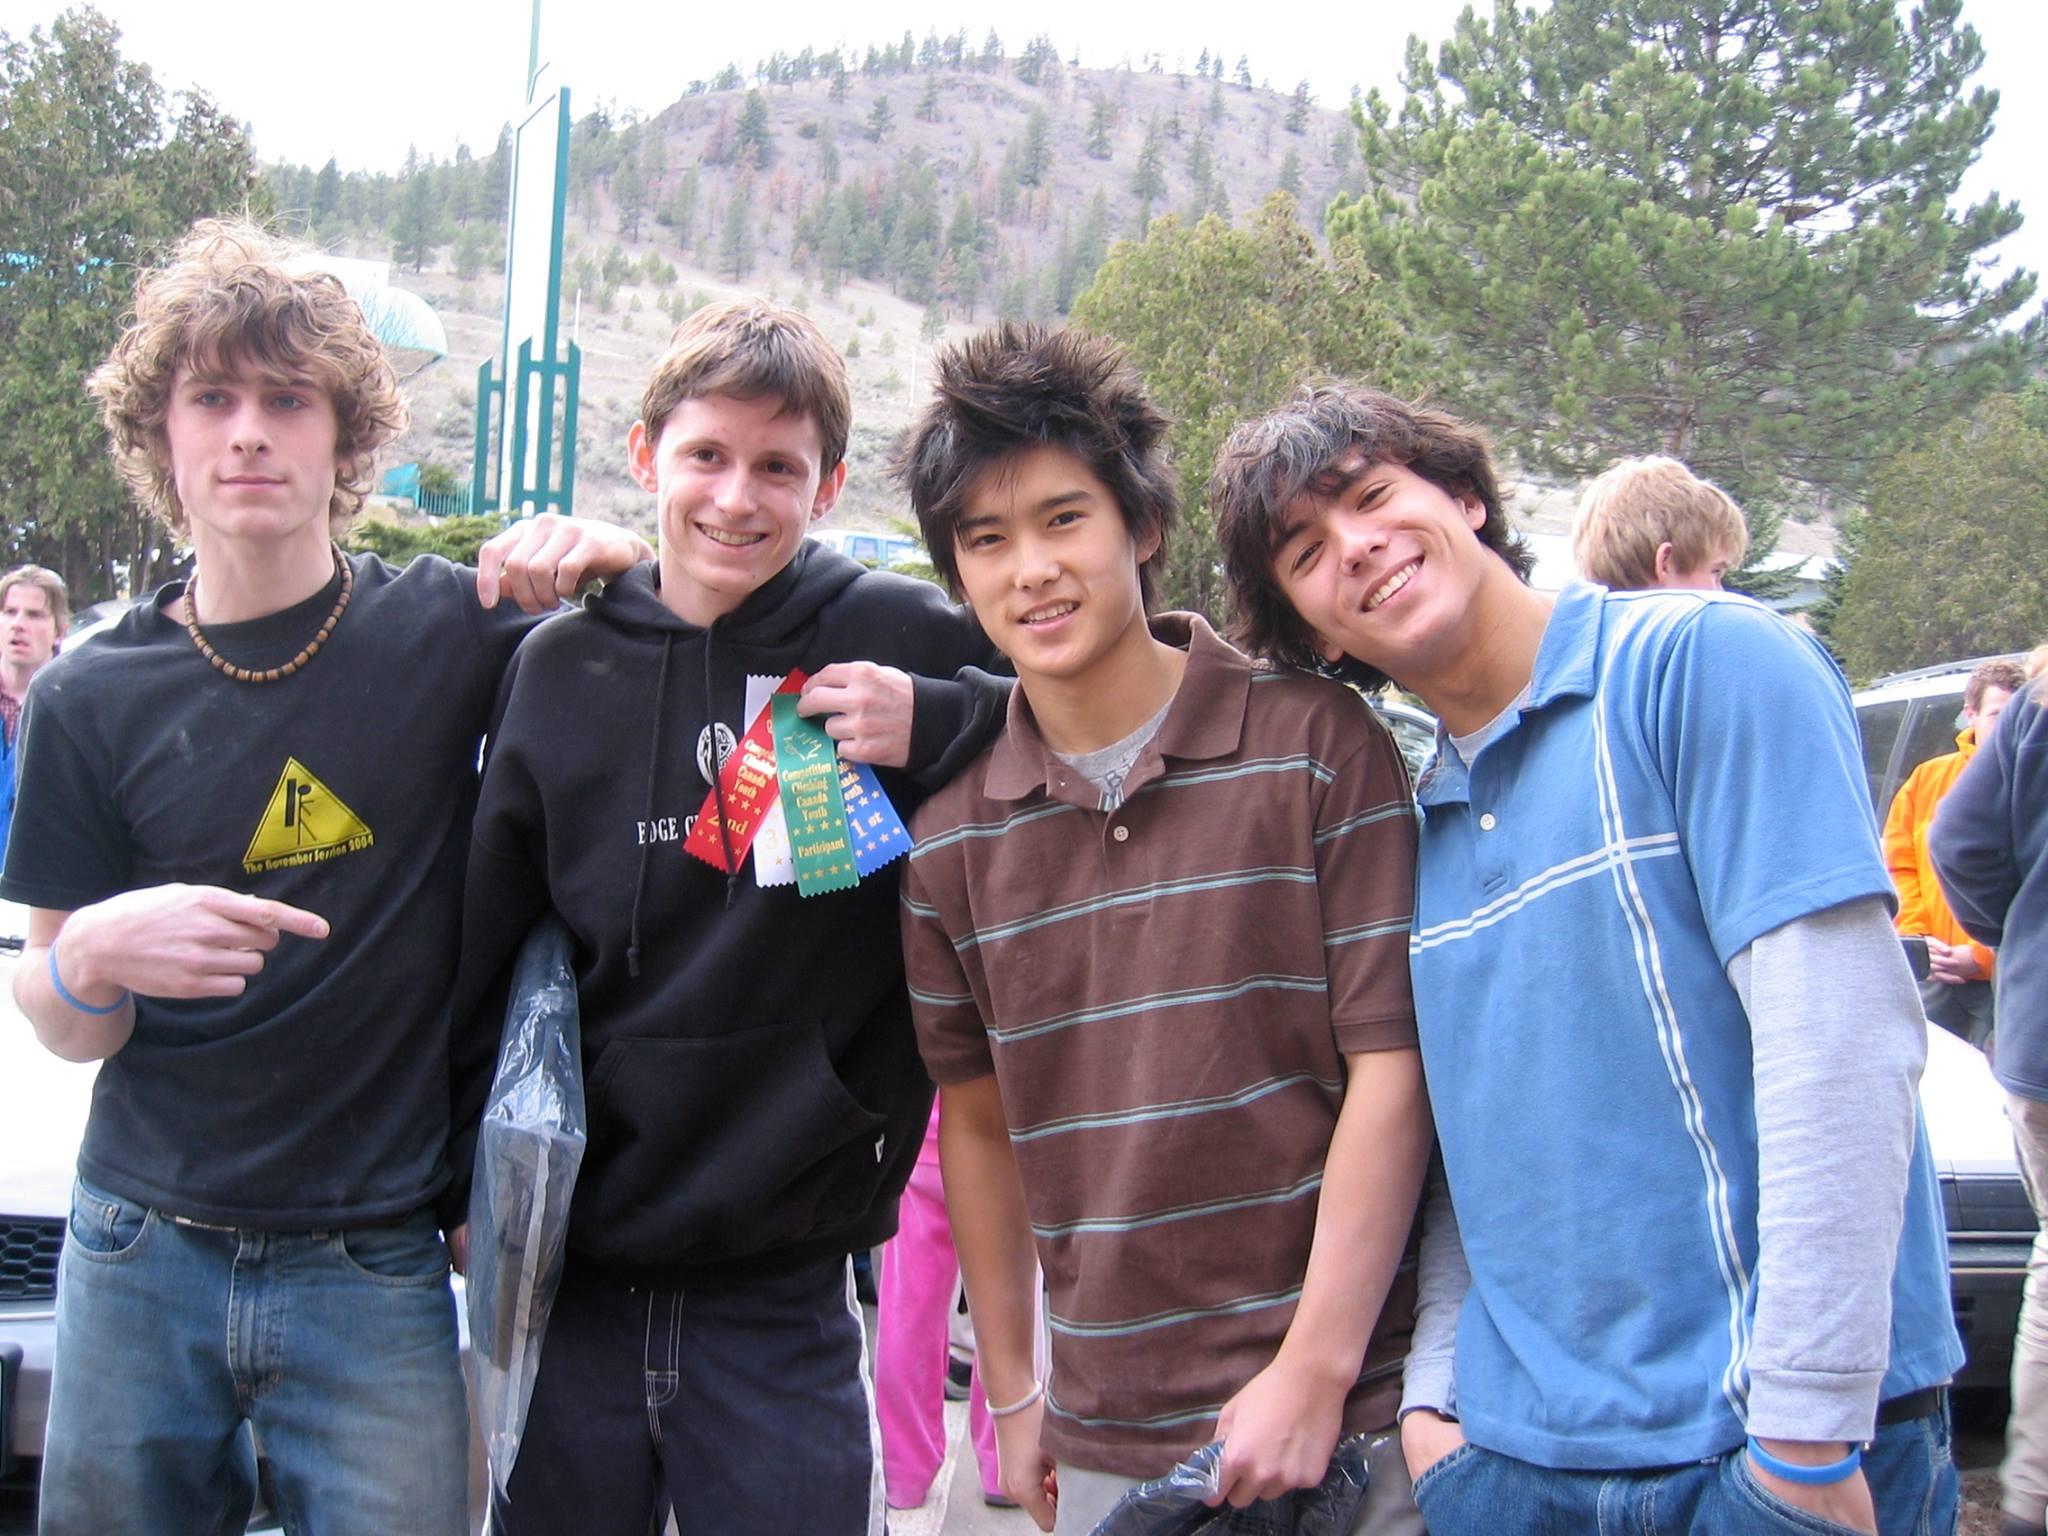 Matt Johnson (Bloc Shop Coach), Simon Parton (2017 Nationals Chief Routesetter), JJ Mah (2017 Nationals runner-up), and Sean McColl (2017 Nationals champion), back in the bad old days. Photo from JJ Mah